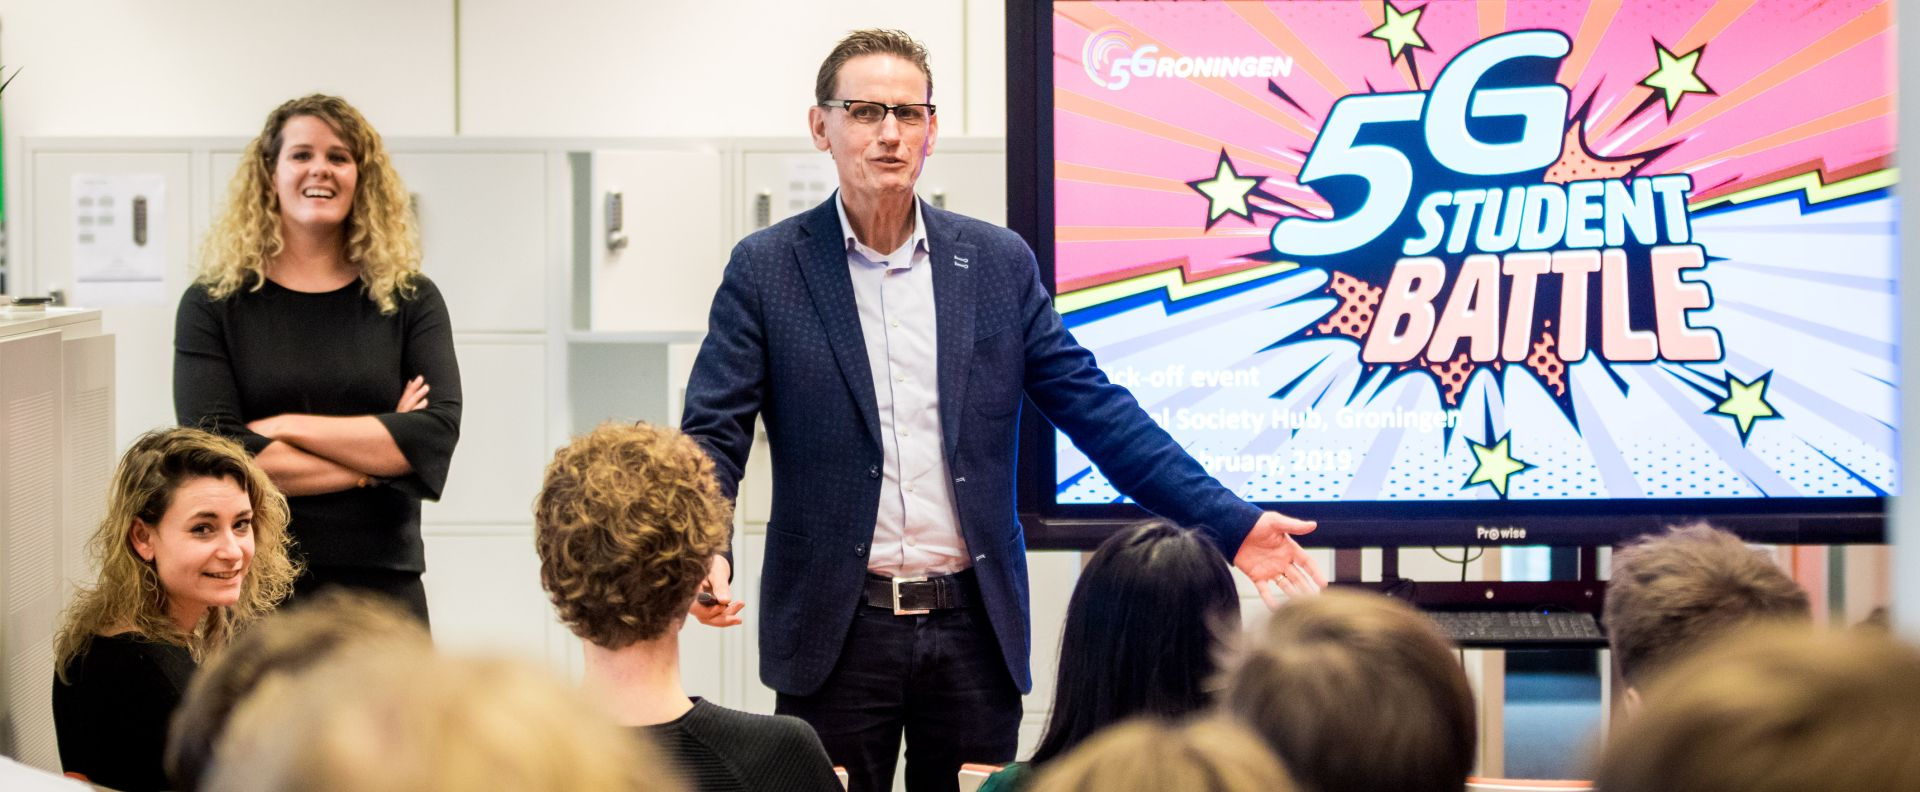 5G Student Battle trapt af met 6 teams mbo-, hbo- en wo-studenten